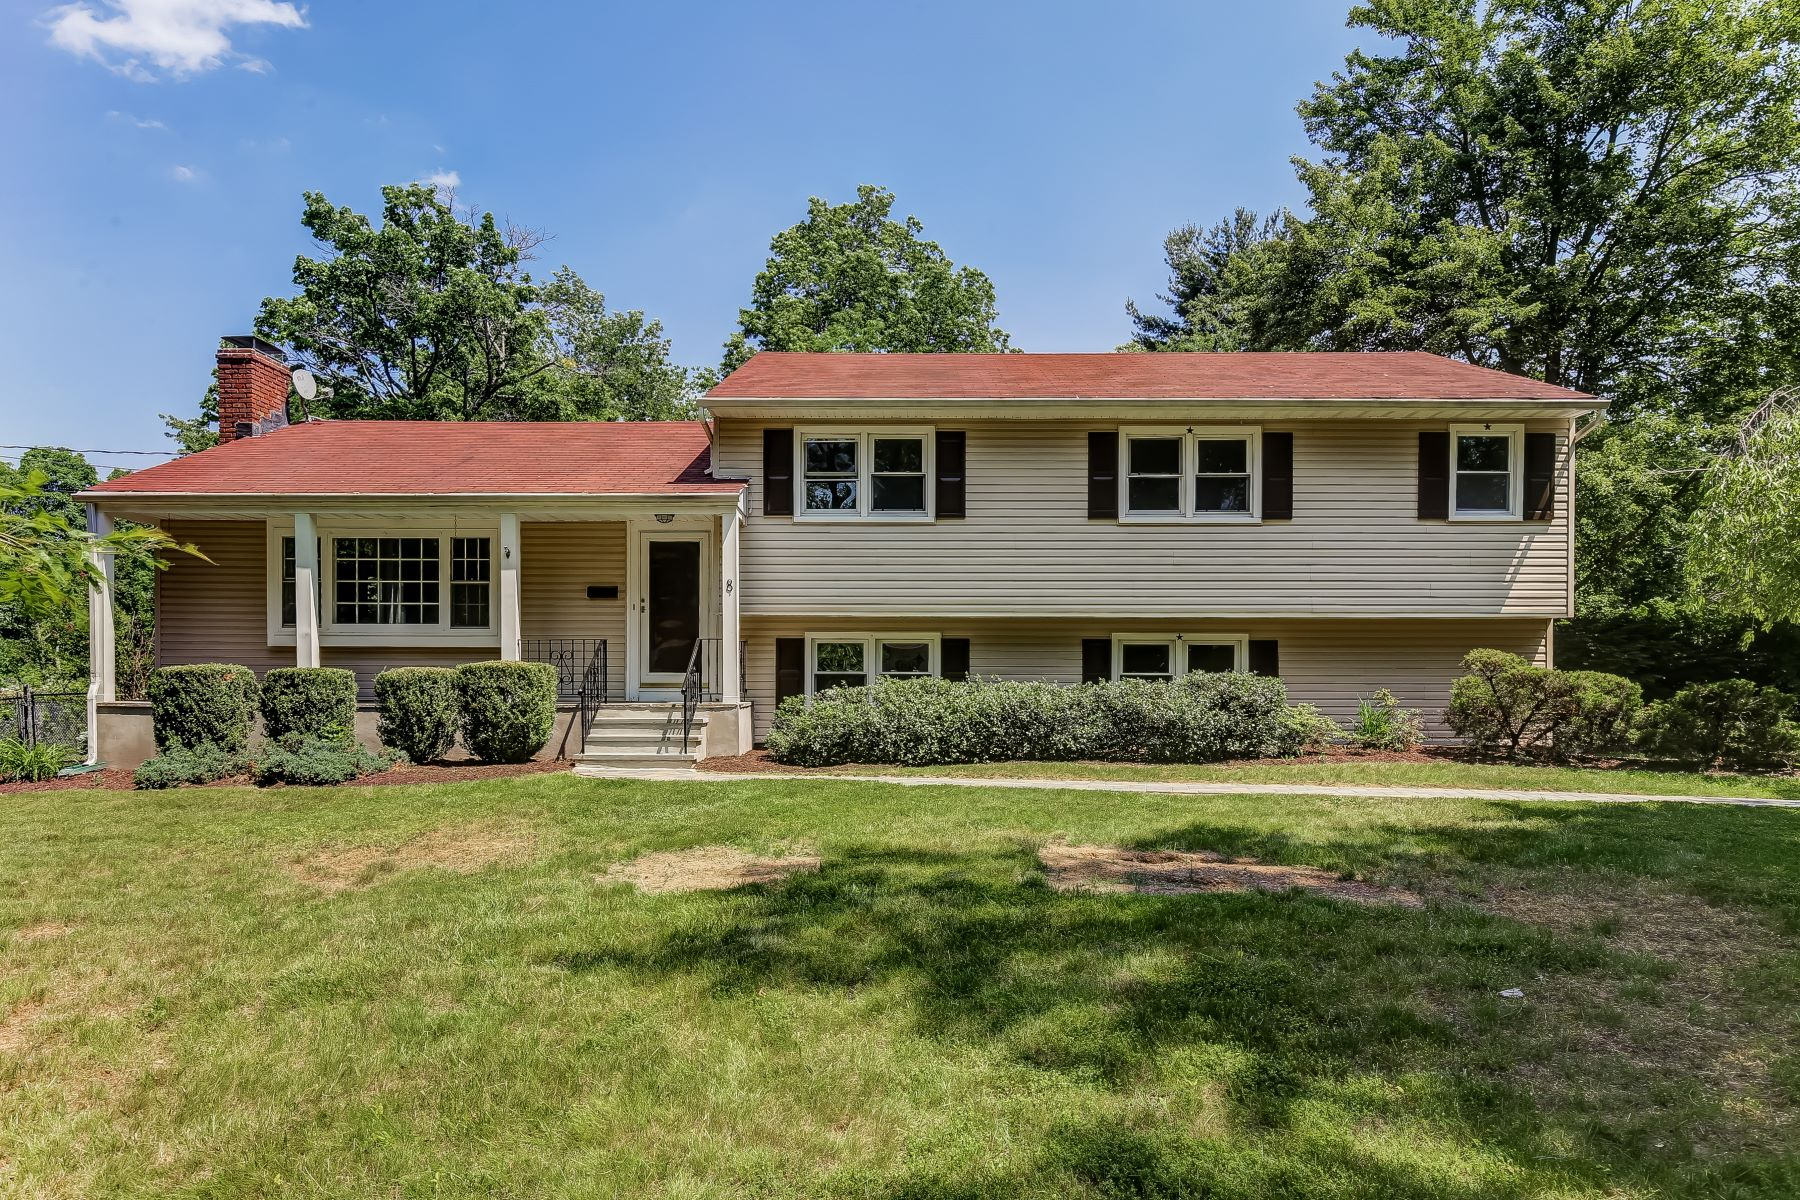 Single Family Home for Sale at Bright, Open, Renovated! 8 Greenwood Road Morris Plains, New Jersey 07950 United States